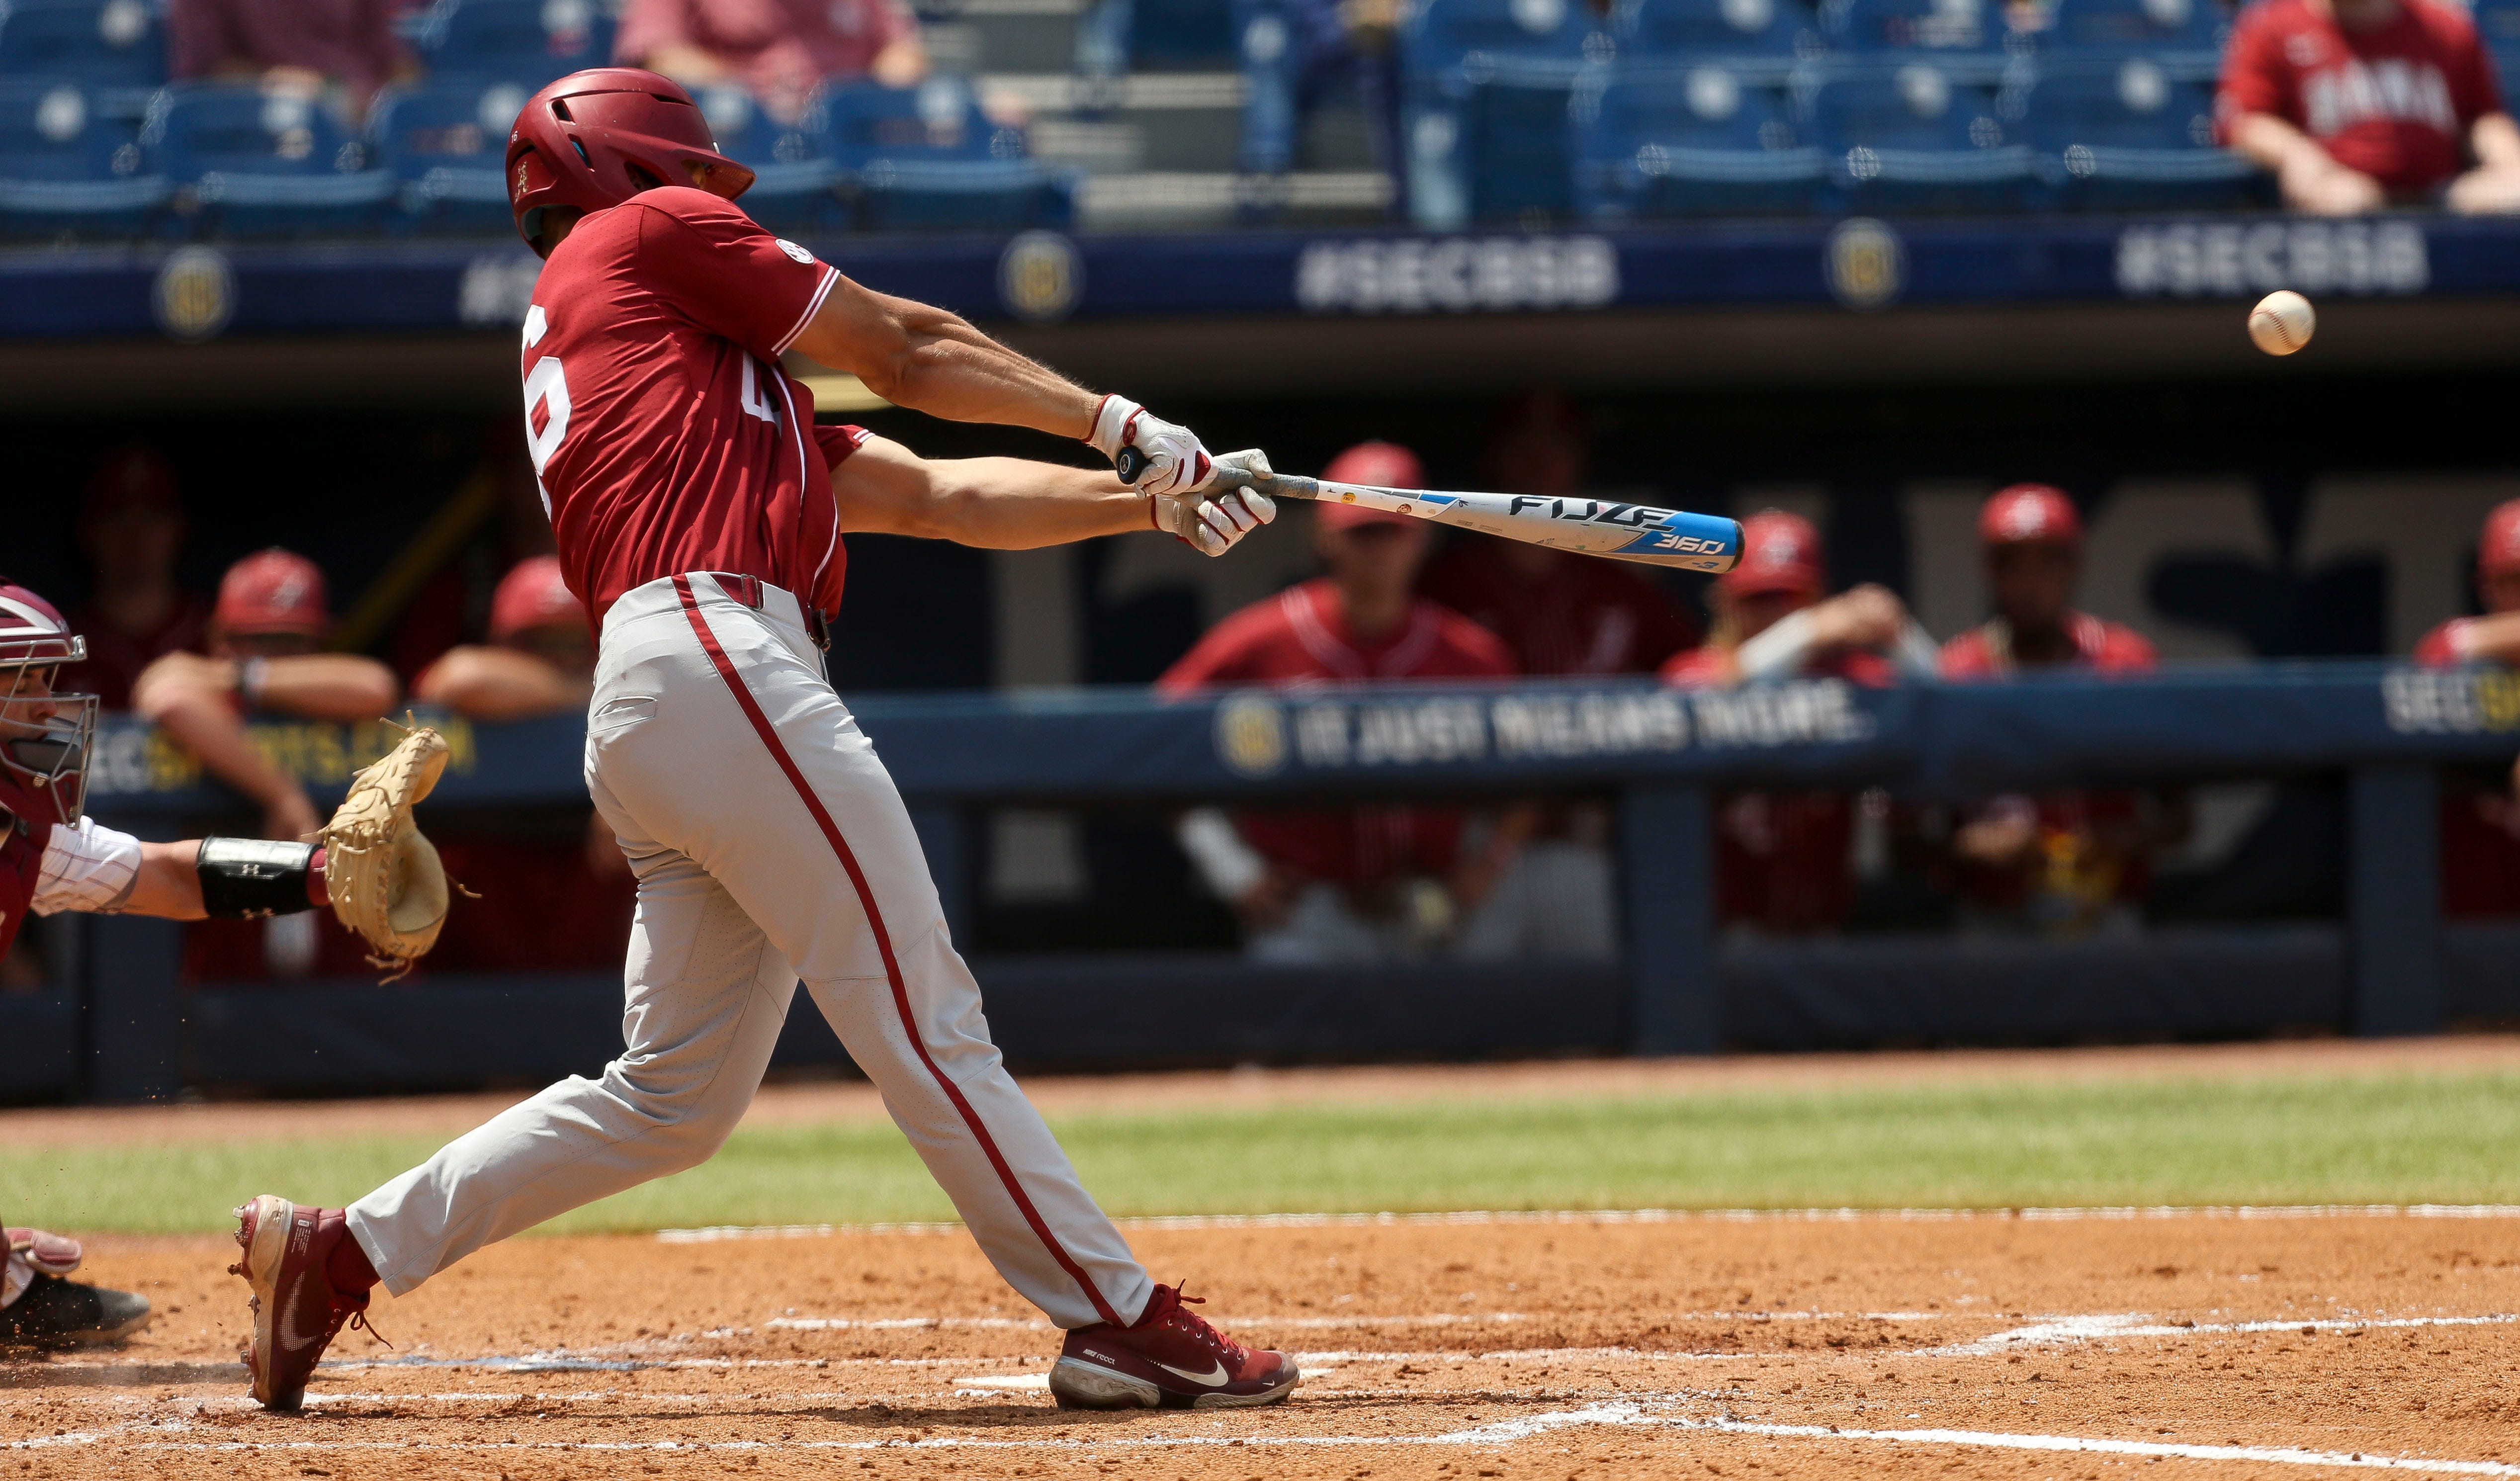 Alabama hitter Owen Diodati (16) connects for a two-run single against South Carolina during the SEC Tournament Tuesday, May 25, 2021, in the Hoover Met in Hoover, Alabama. [Staff Photo/Gary Cosby Jr.]